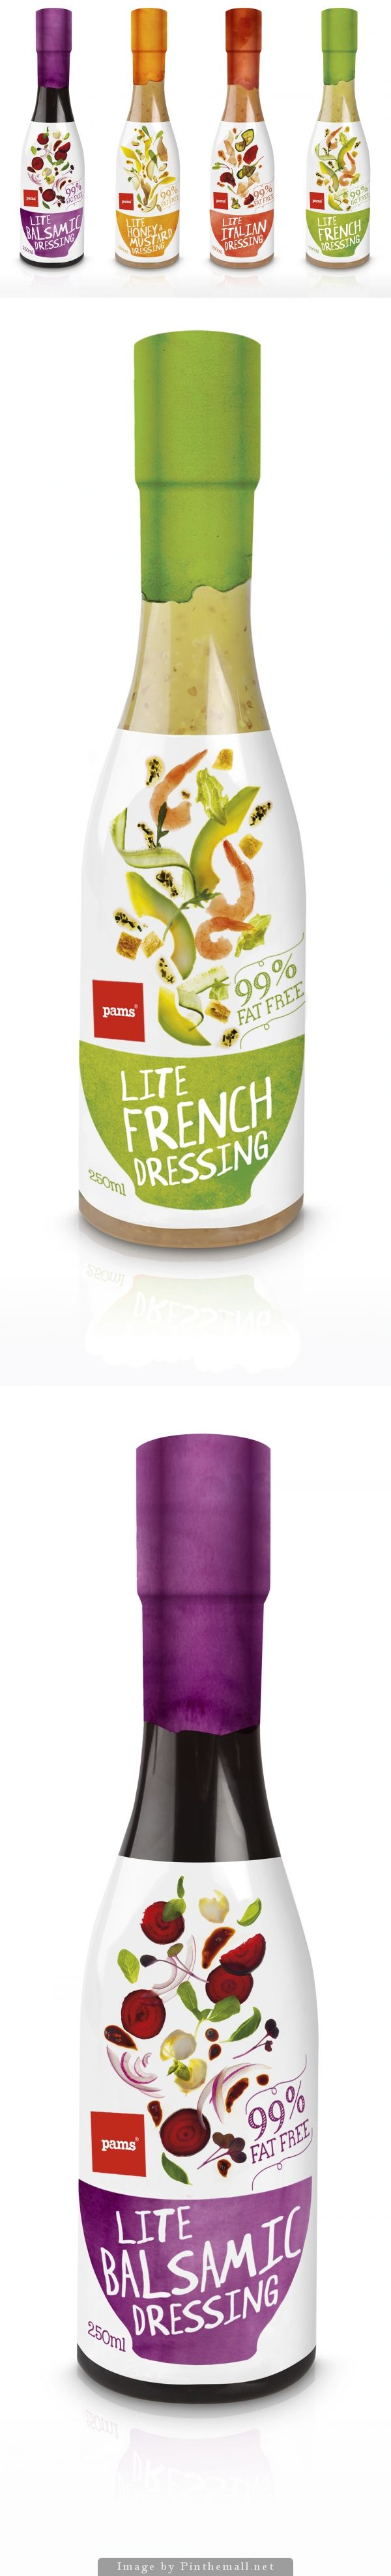 Pams Lite Dressings